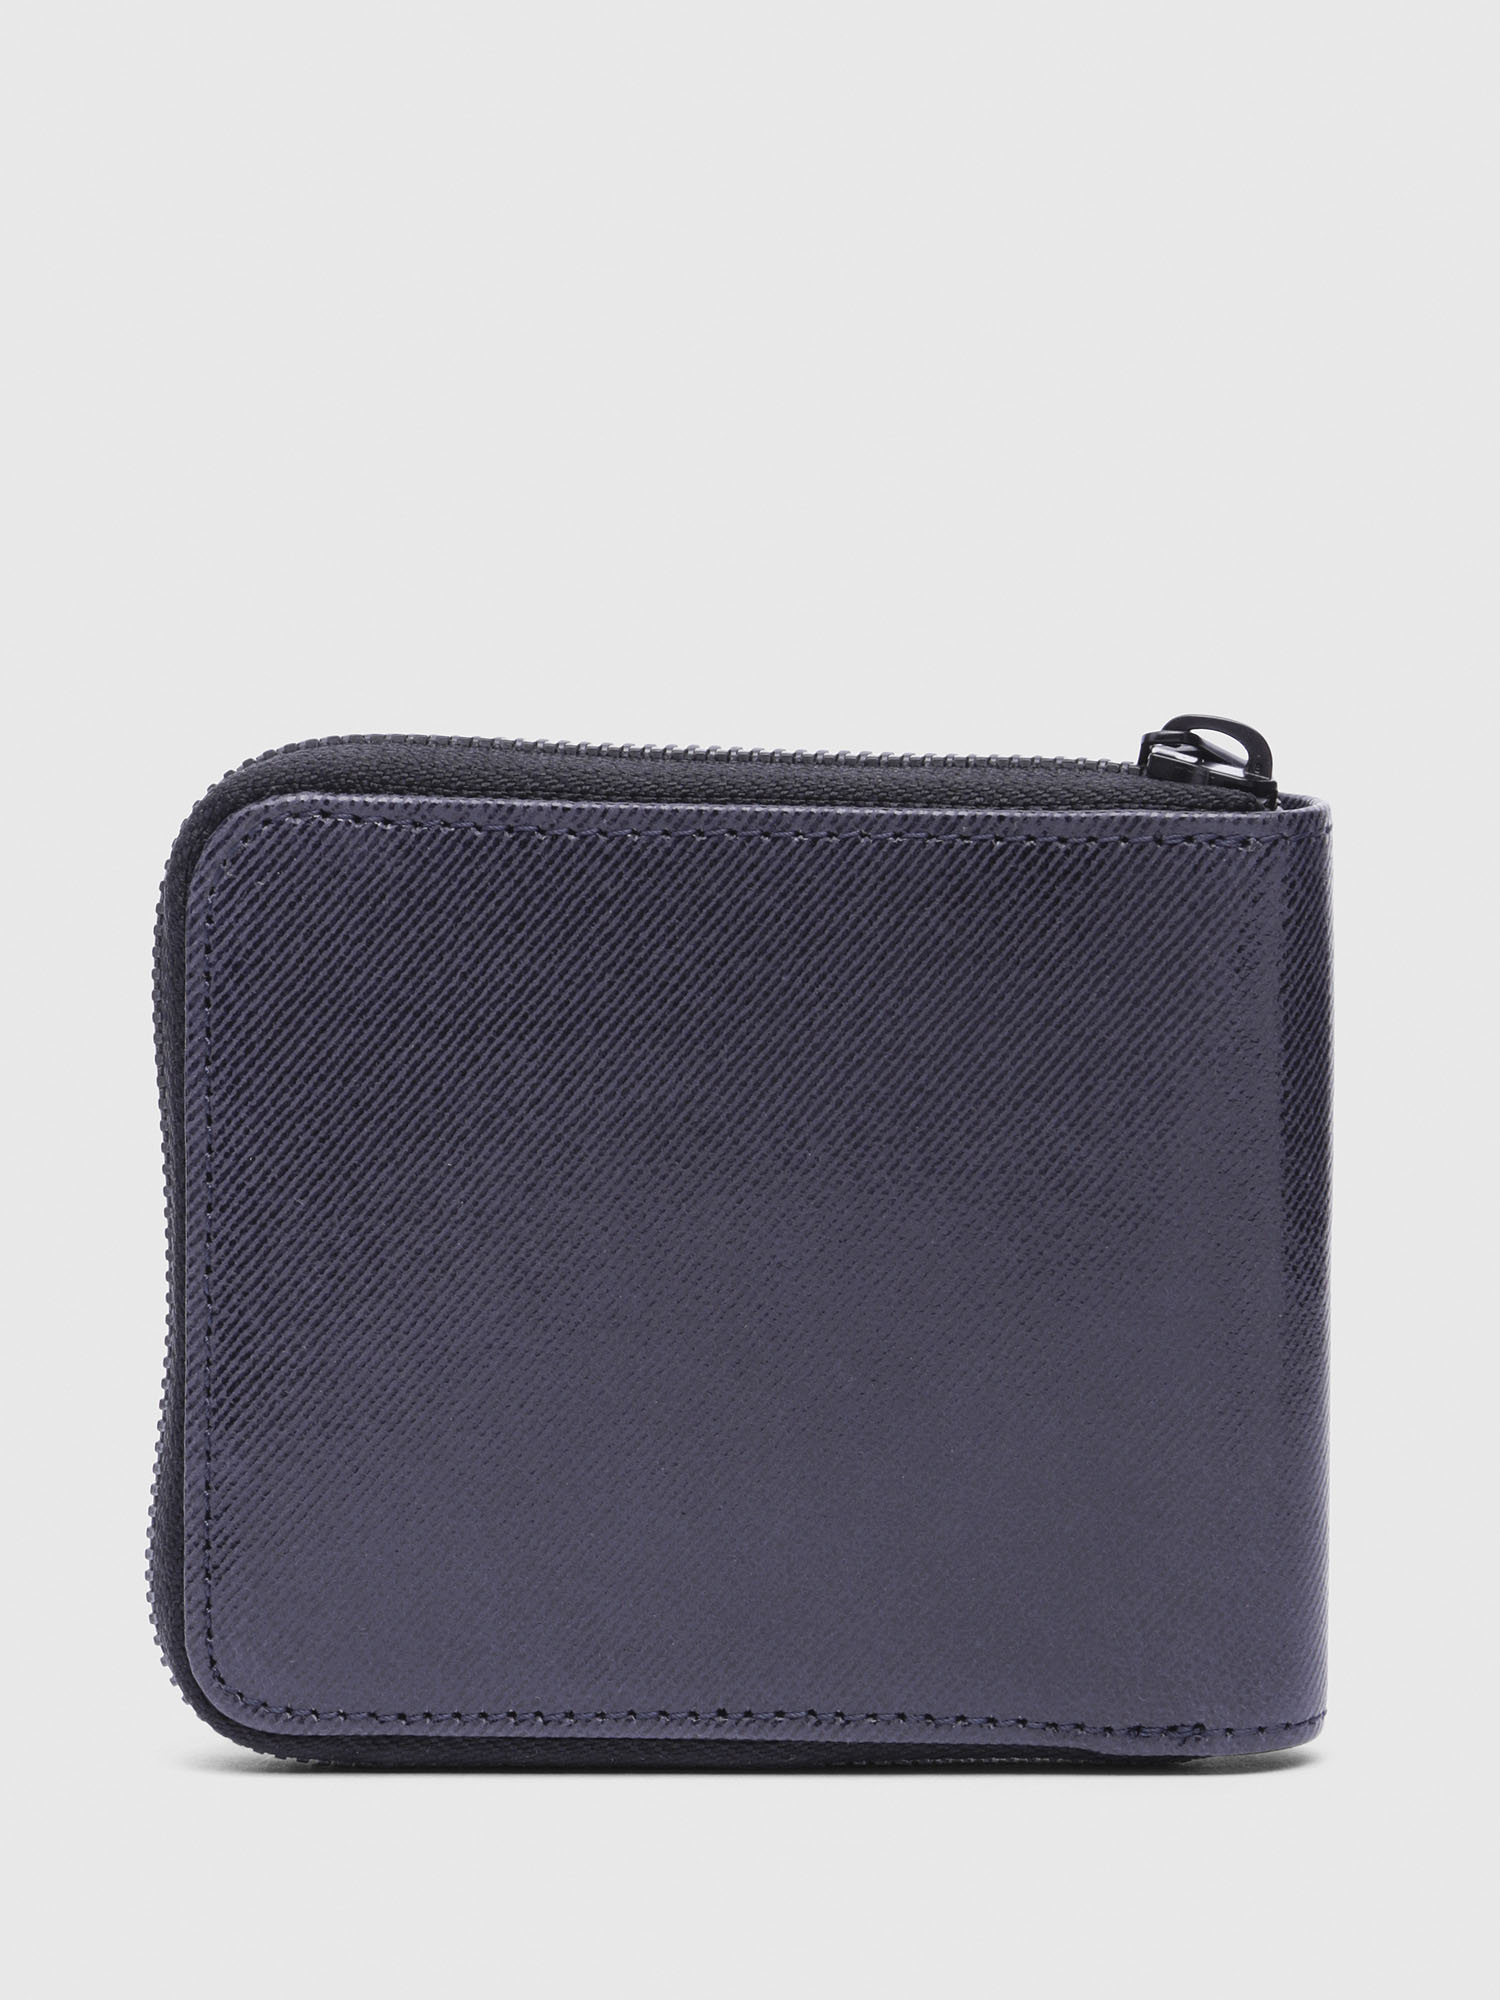 Diesel - ZIPPY HIRESH S WITH,  - Zip-Round Wallets - Image 2